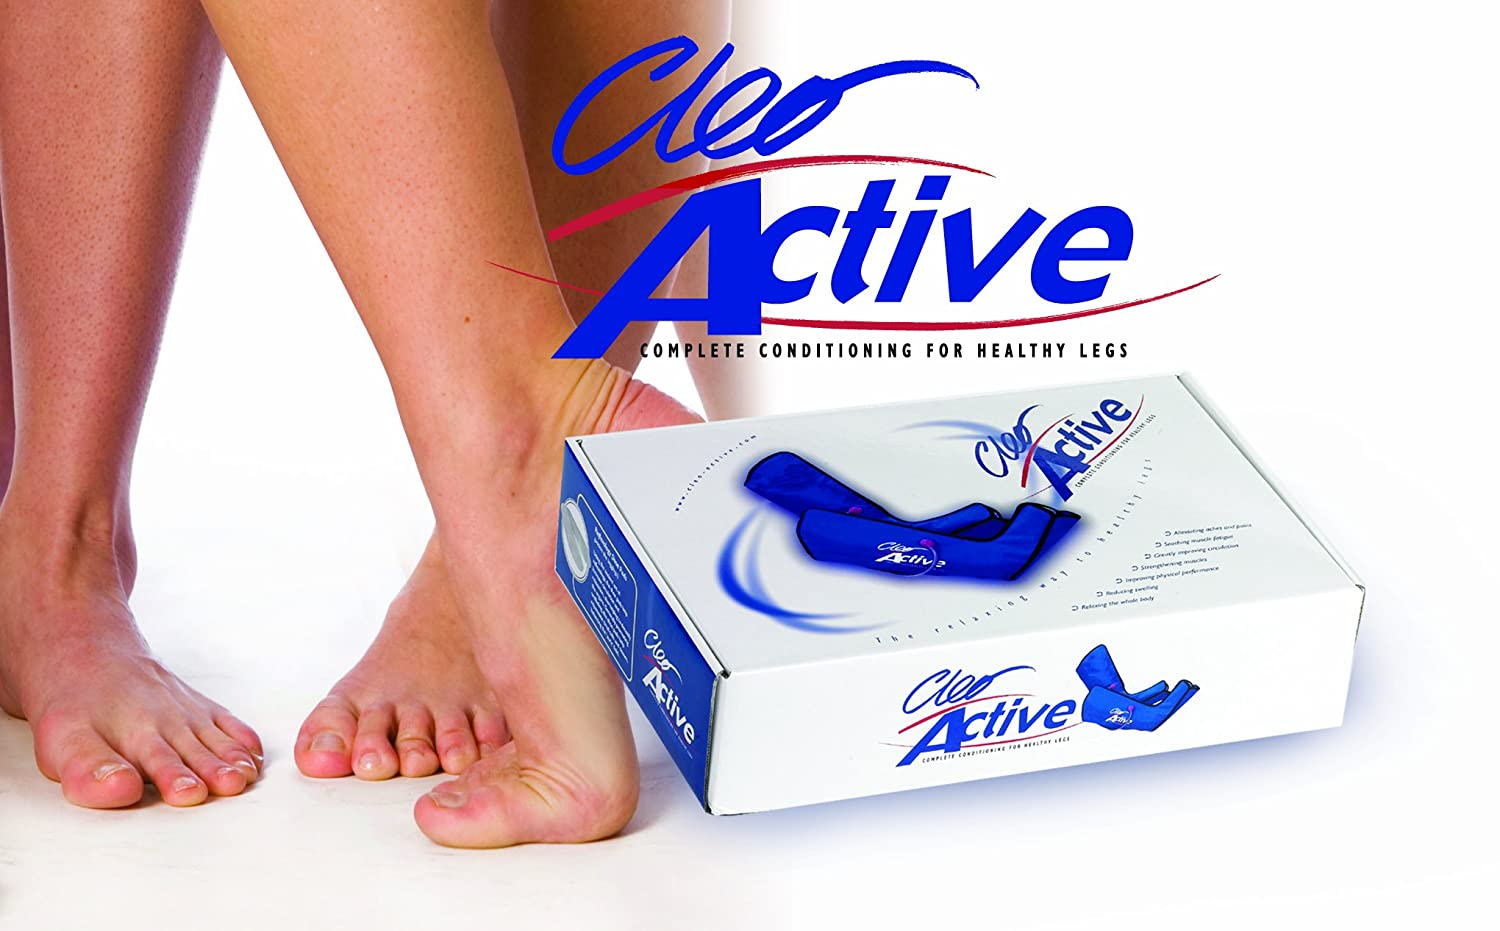 Cleo Active Advanced Circulation Therapy Leg & Foot Massage System ...